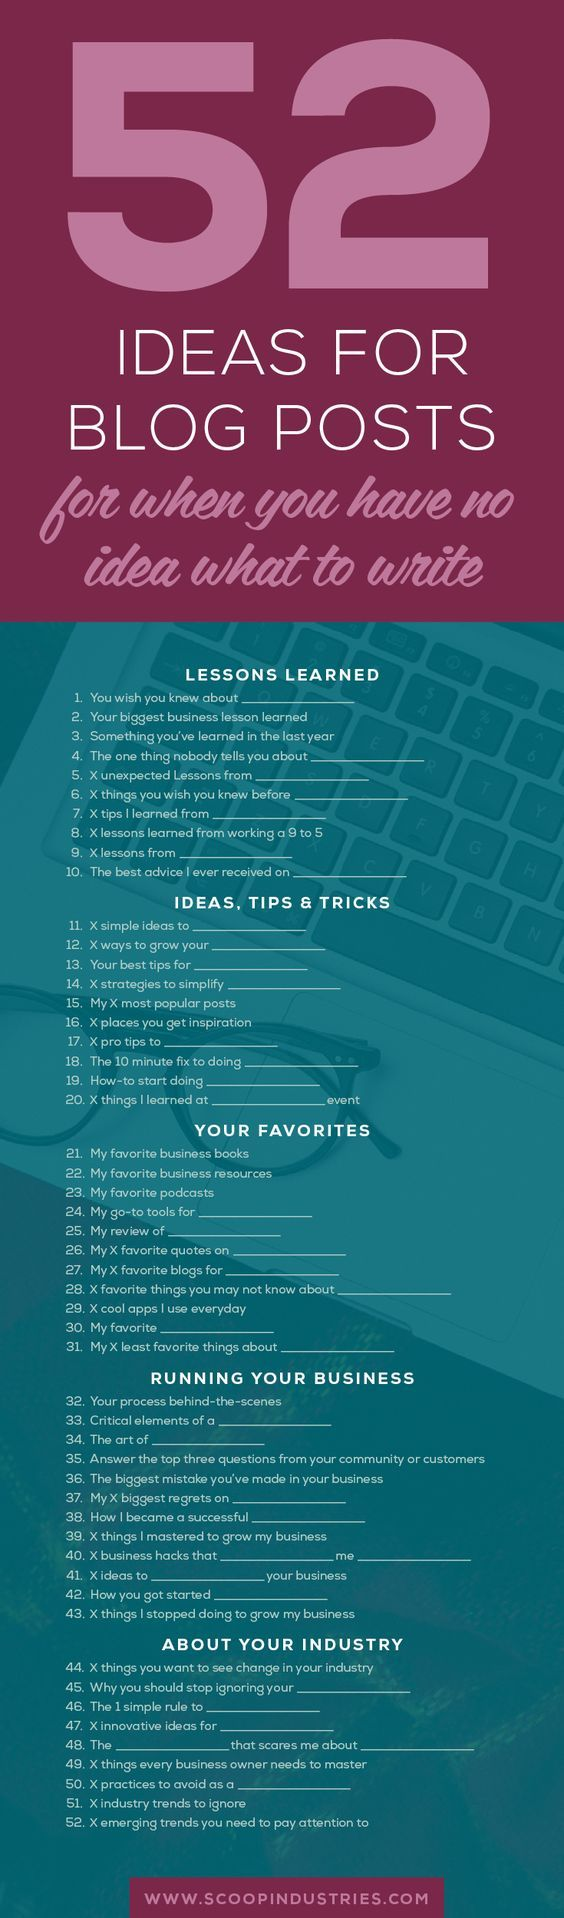 52 Ideas for Blog Posts for When You Have No Idea What to Write - @redwebdesign